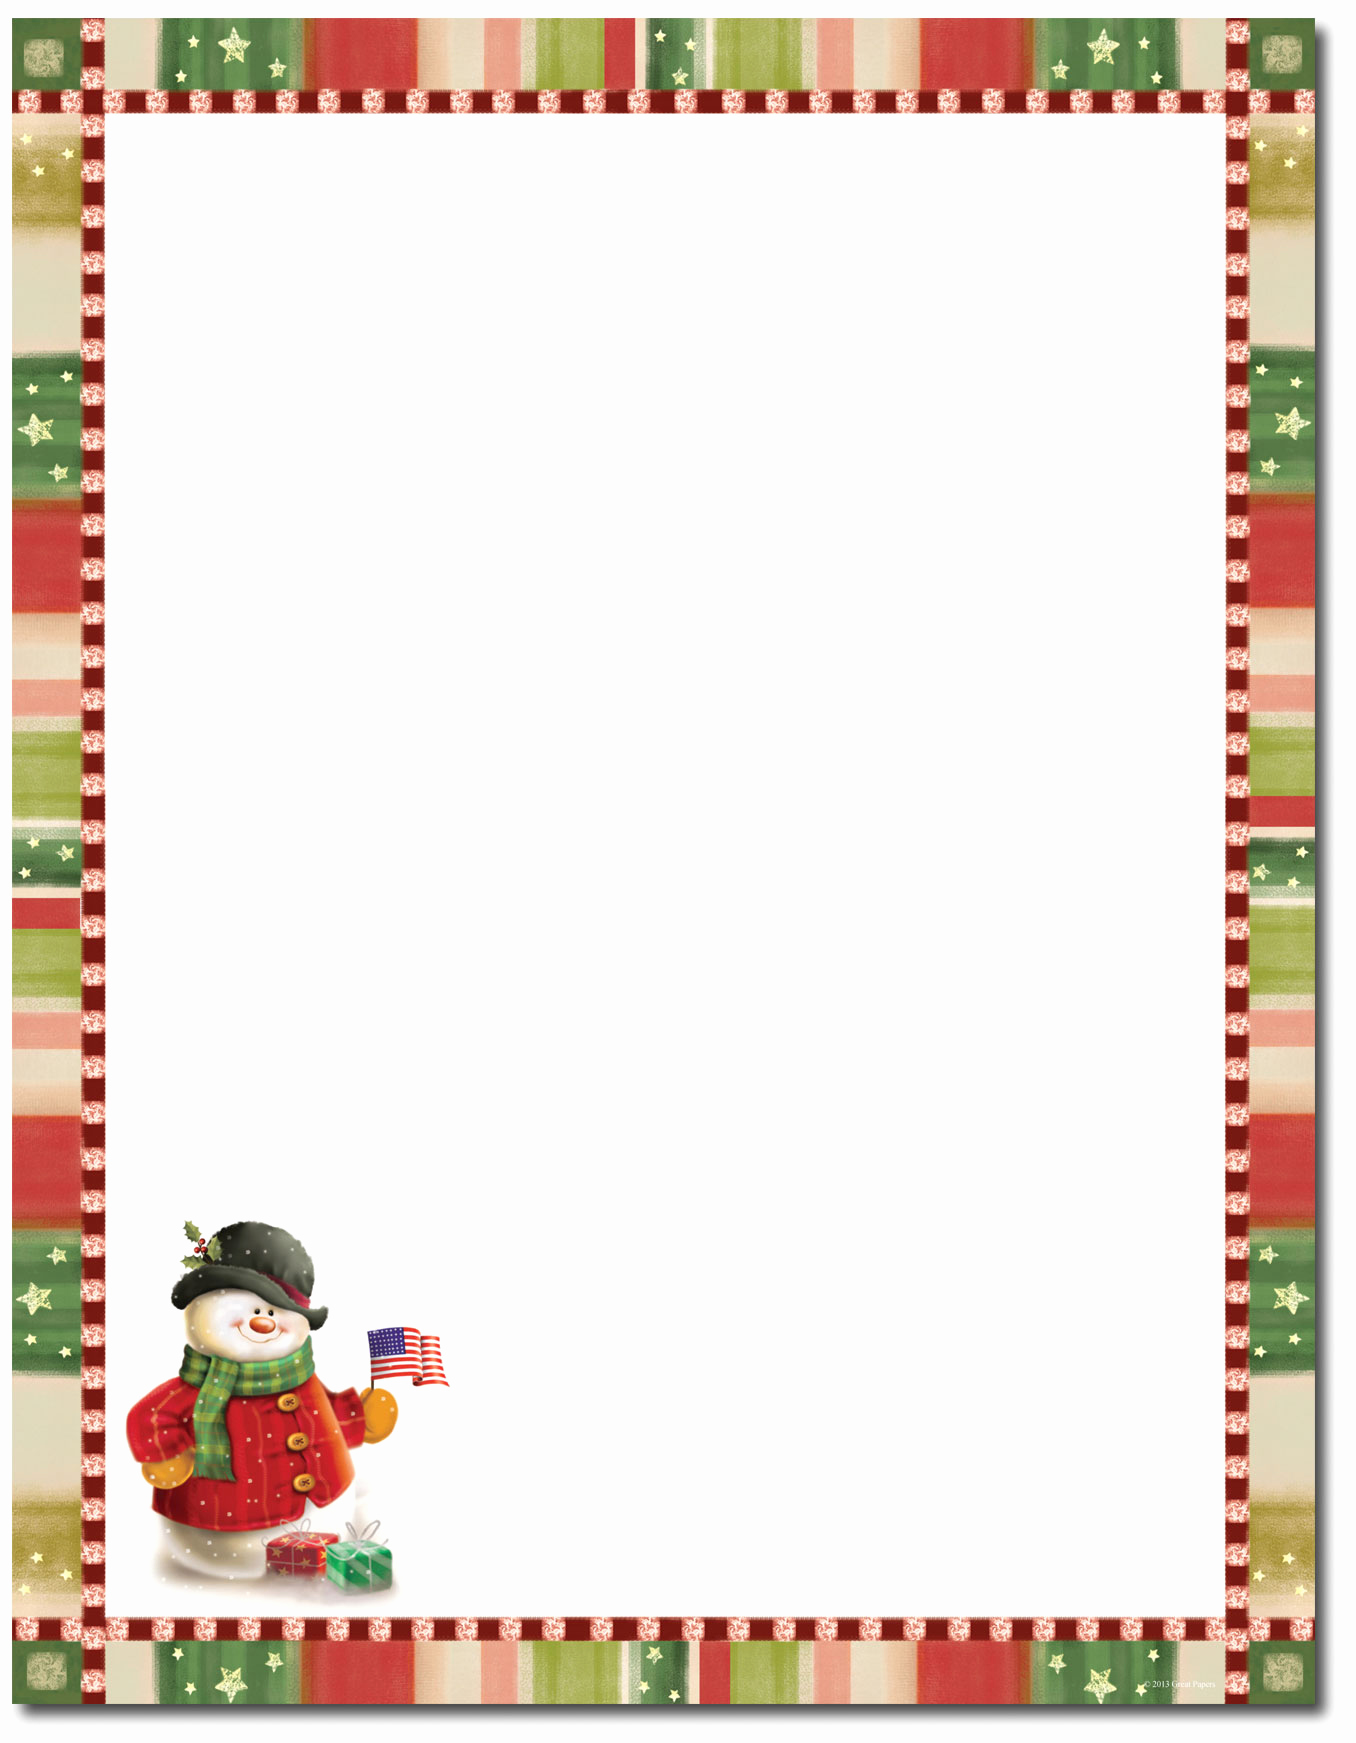 Free Christmas Stationery Templates Awesome Great Papers Patriotic Snowman Letterhead